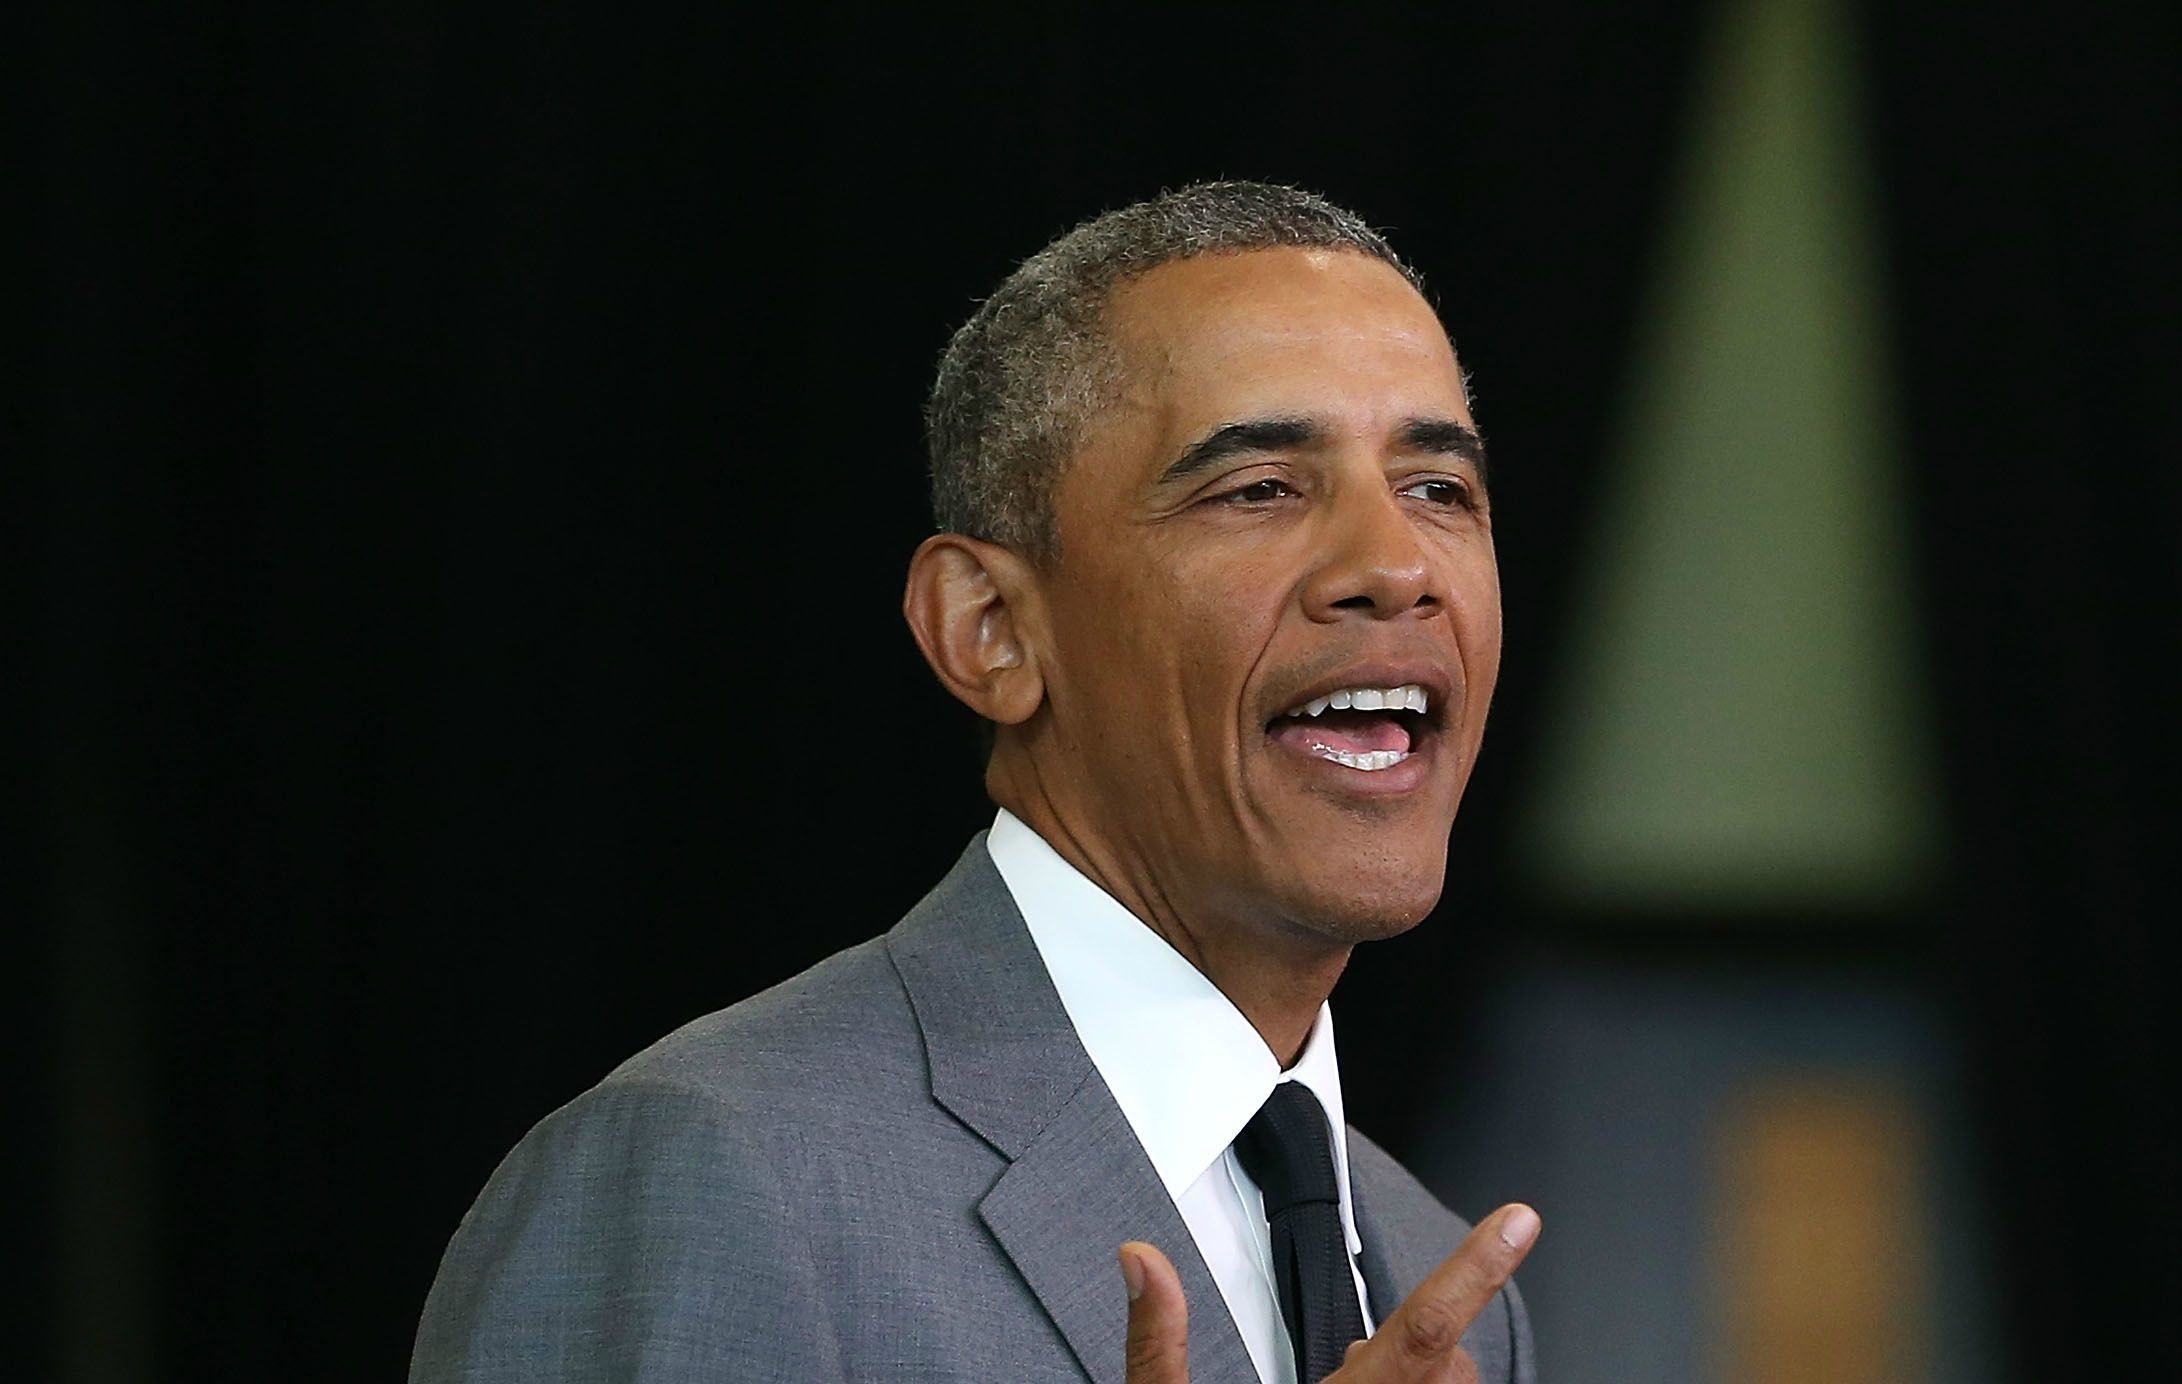 Barack Obama Wallpapers Images Photos Pictures Backgrounds 2182x1384